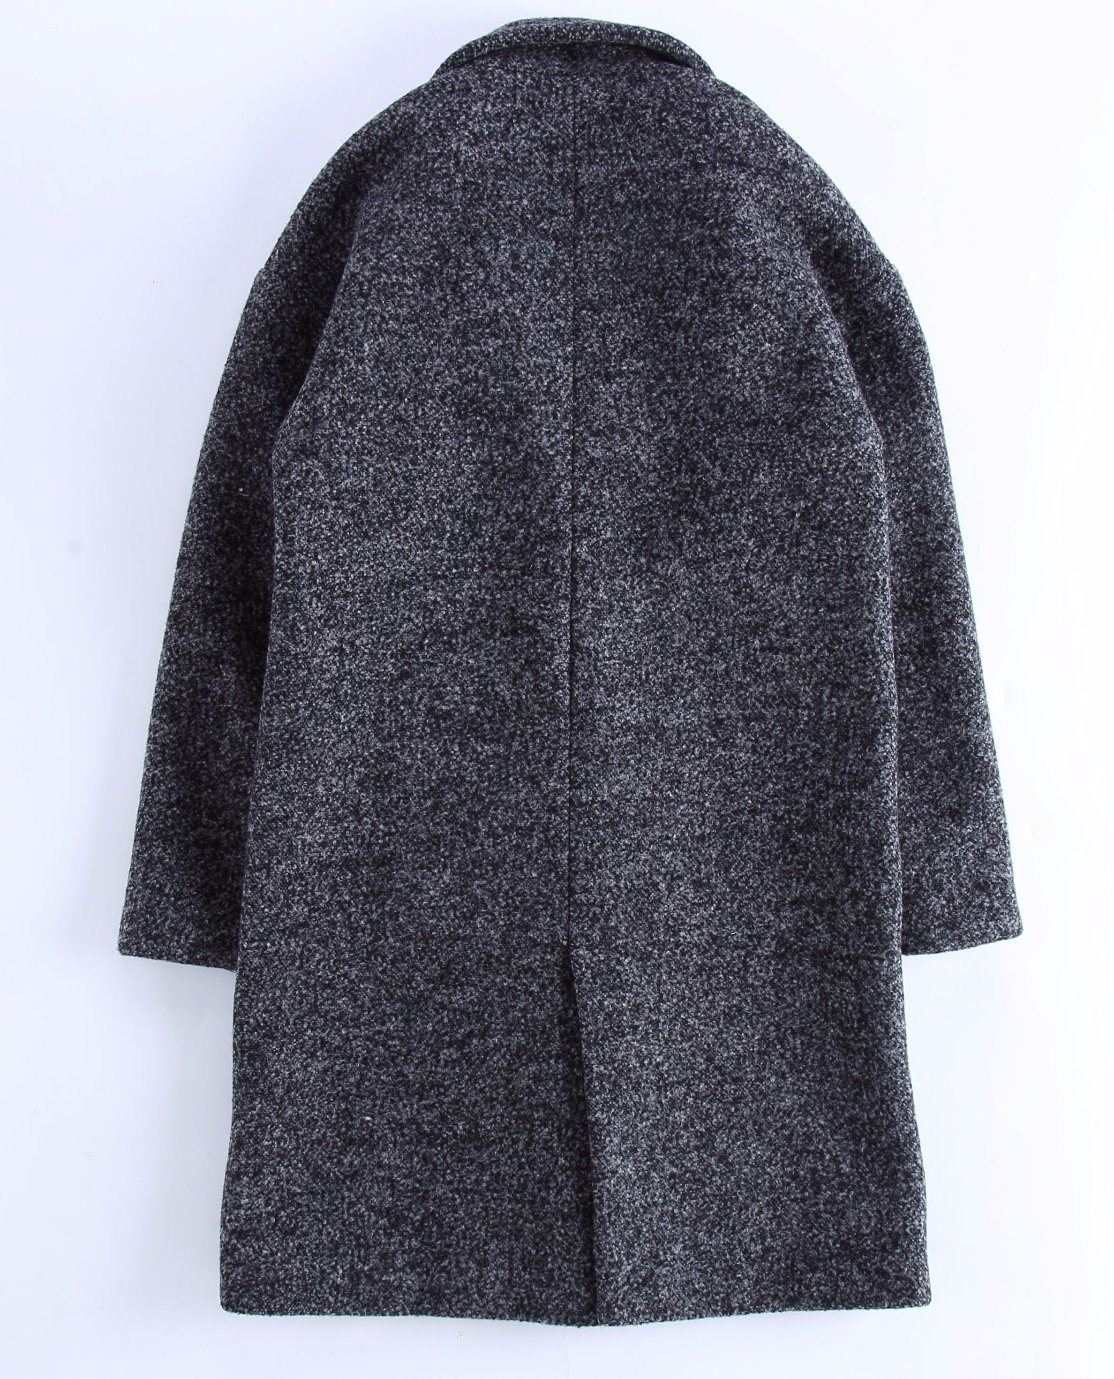 Made to Measure High Quality Tweed Coat for Men